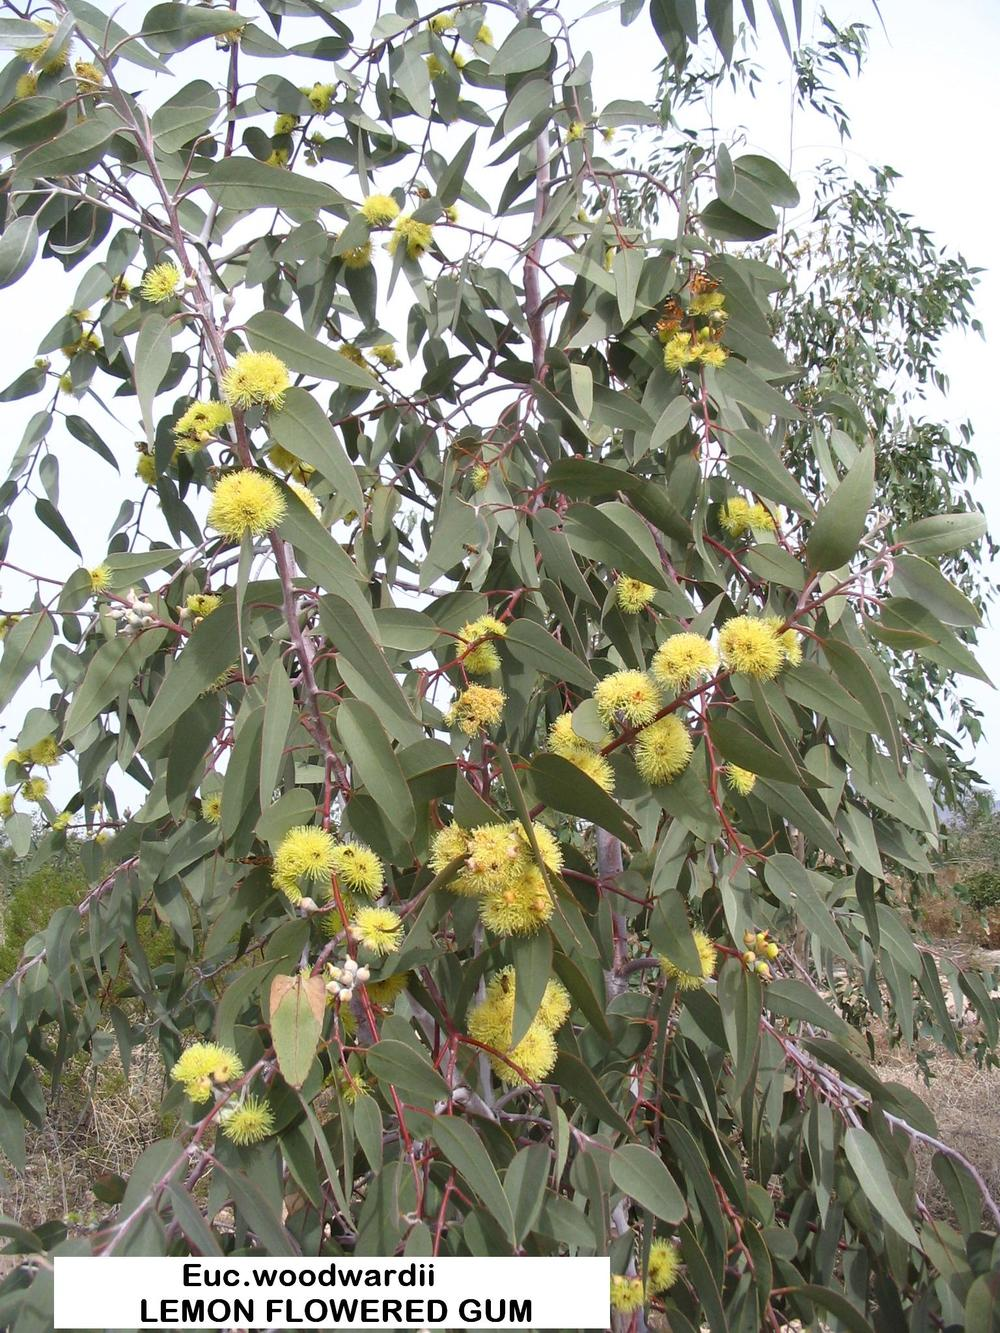 z1 E.LEMON FLOWERED GUM  large clusters.JPG